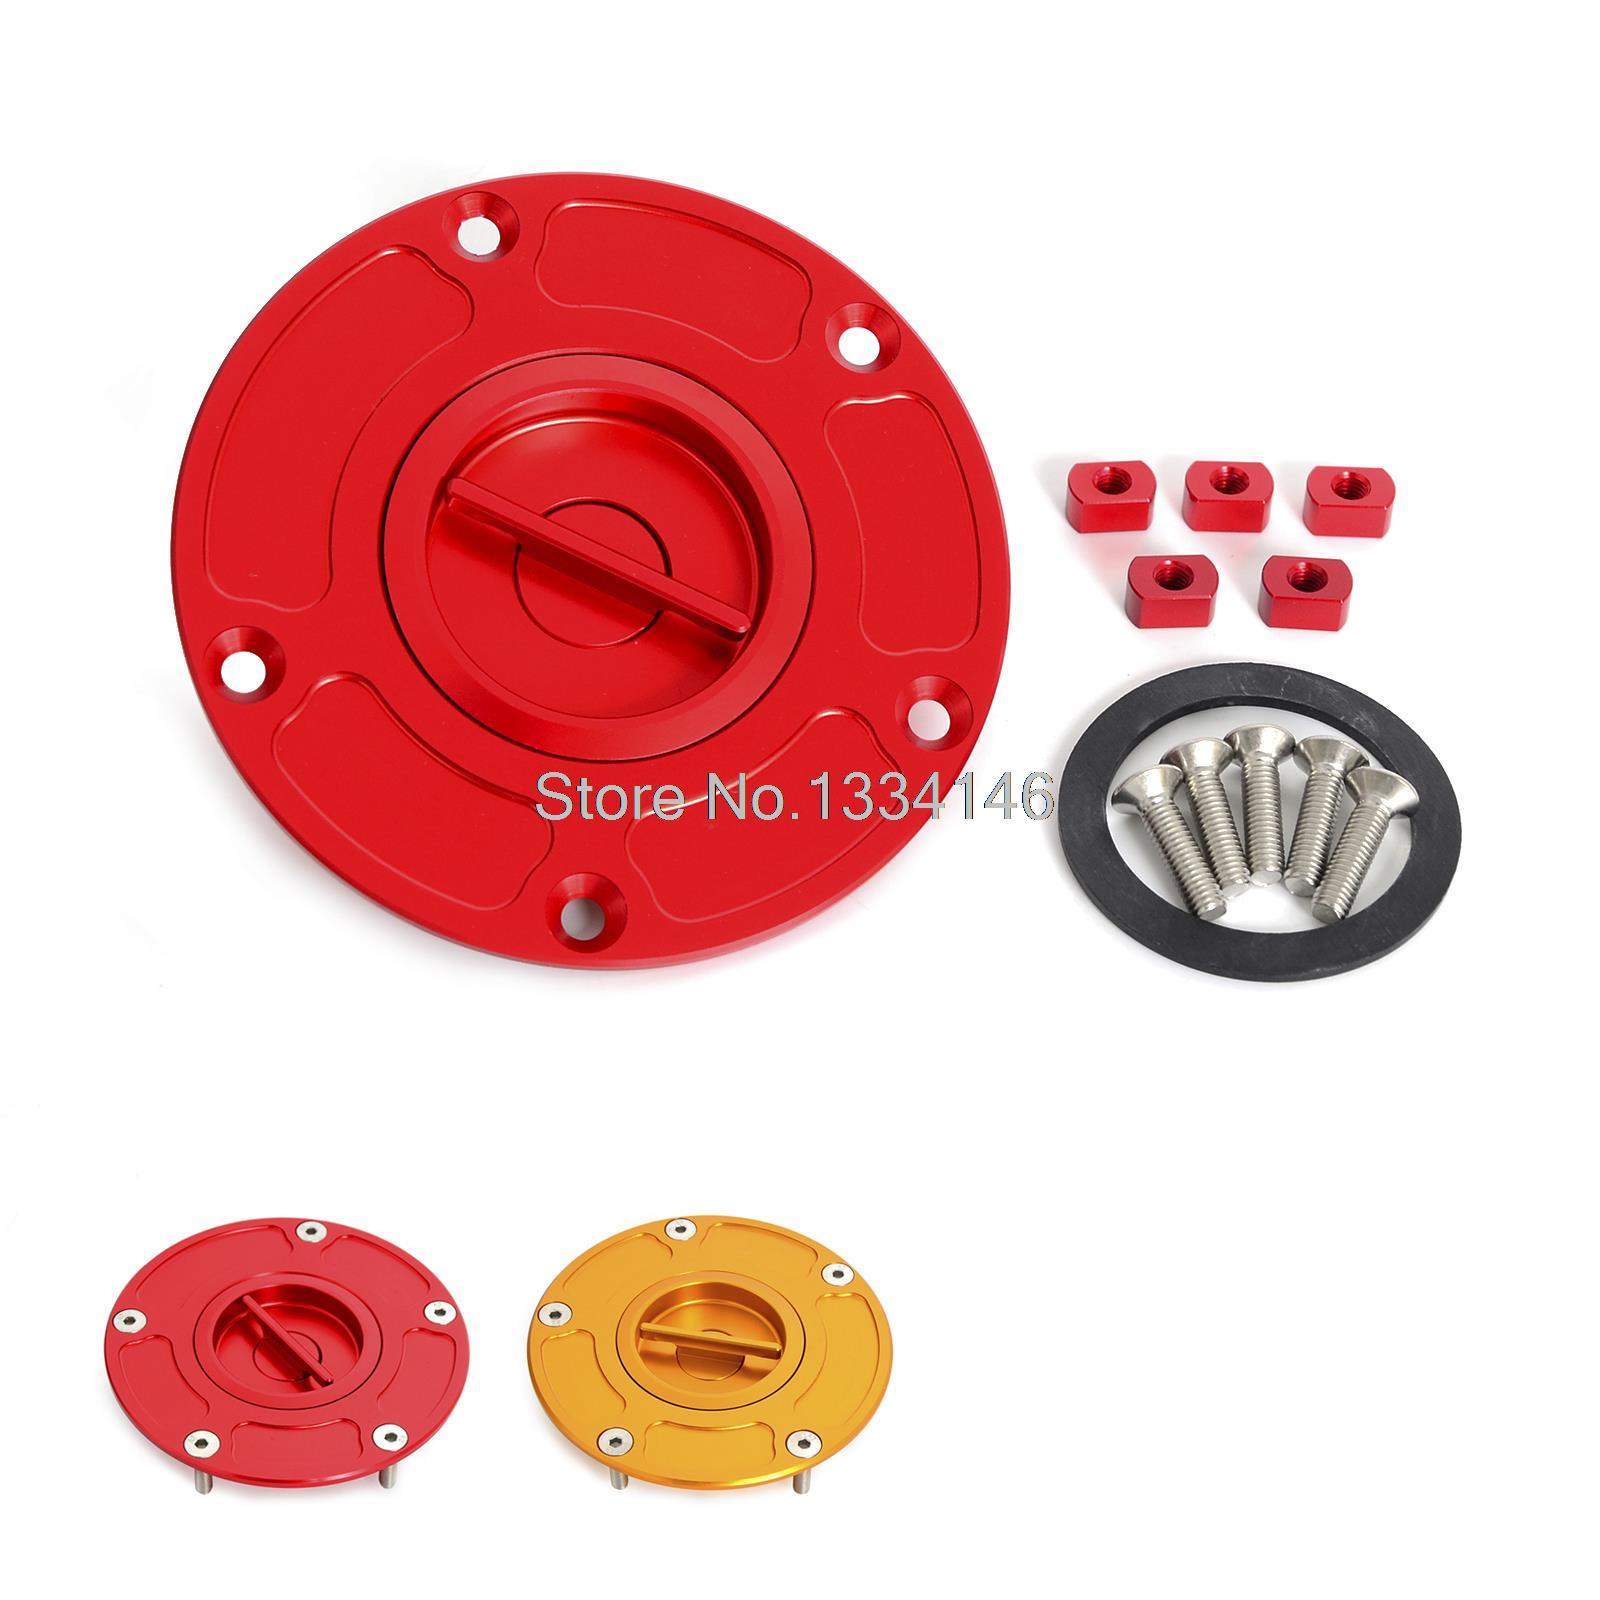 Aluminum Fuel Gas Cap Anodized Fit For DUCATI MONSTER 696 / 796 / 1100 / EVO - All Years<br>